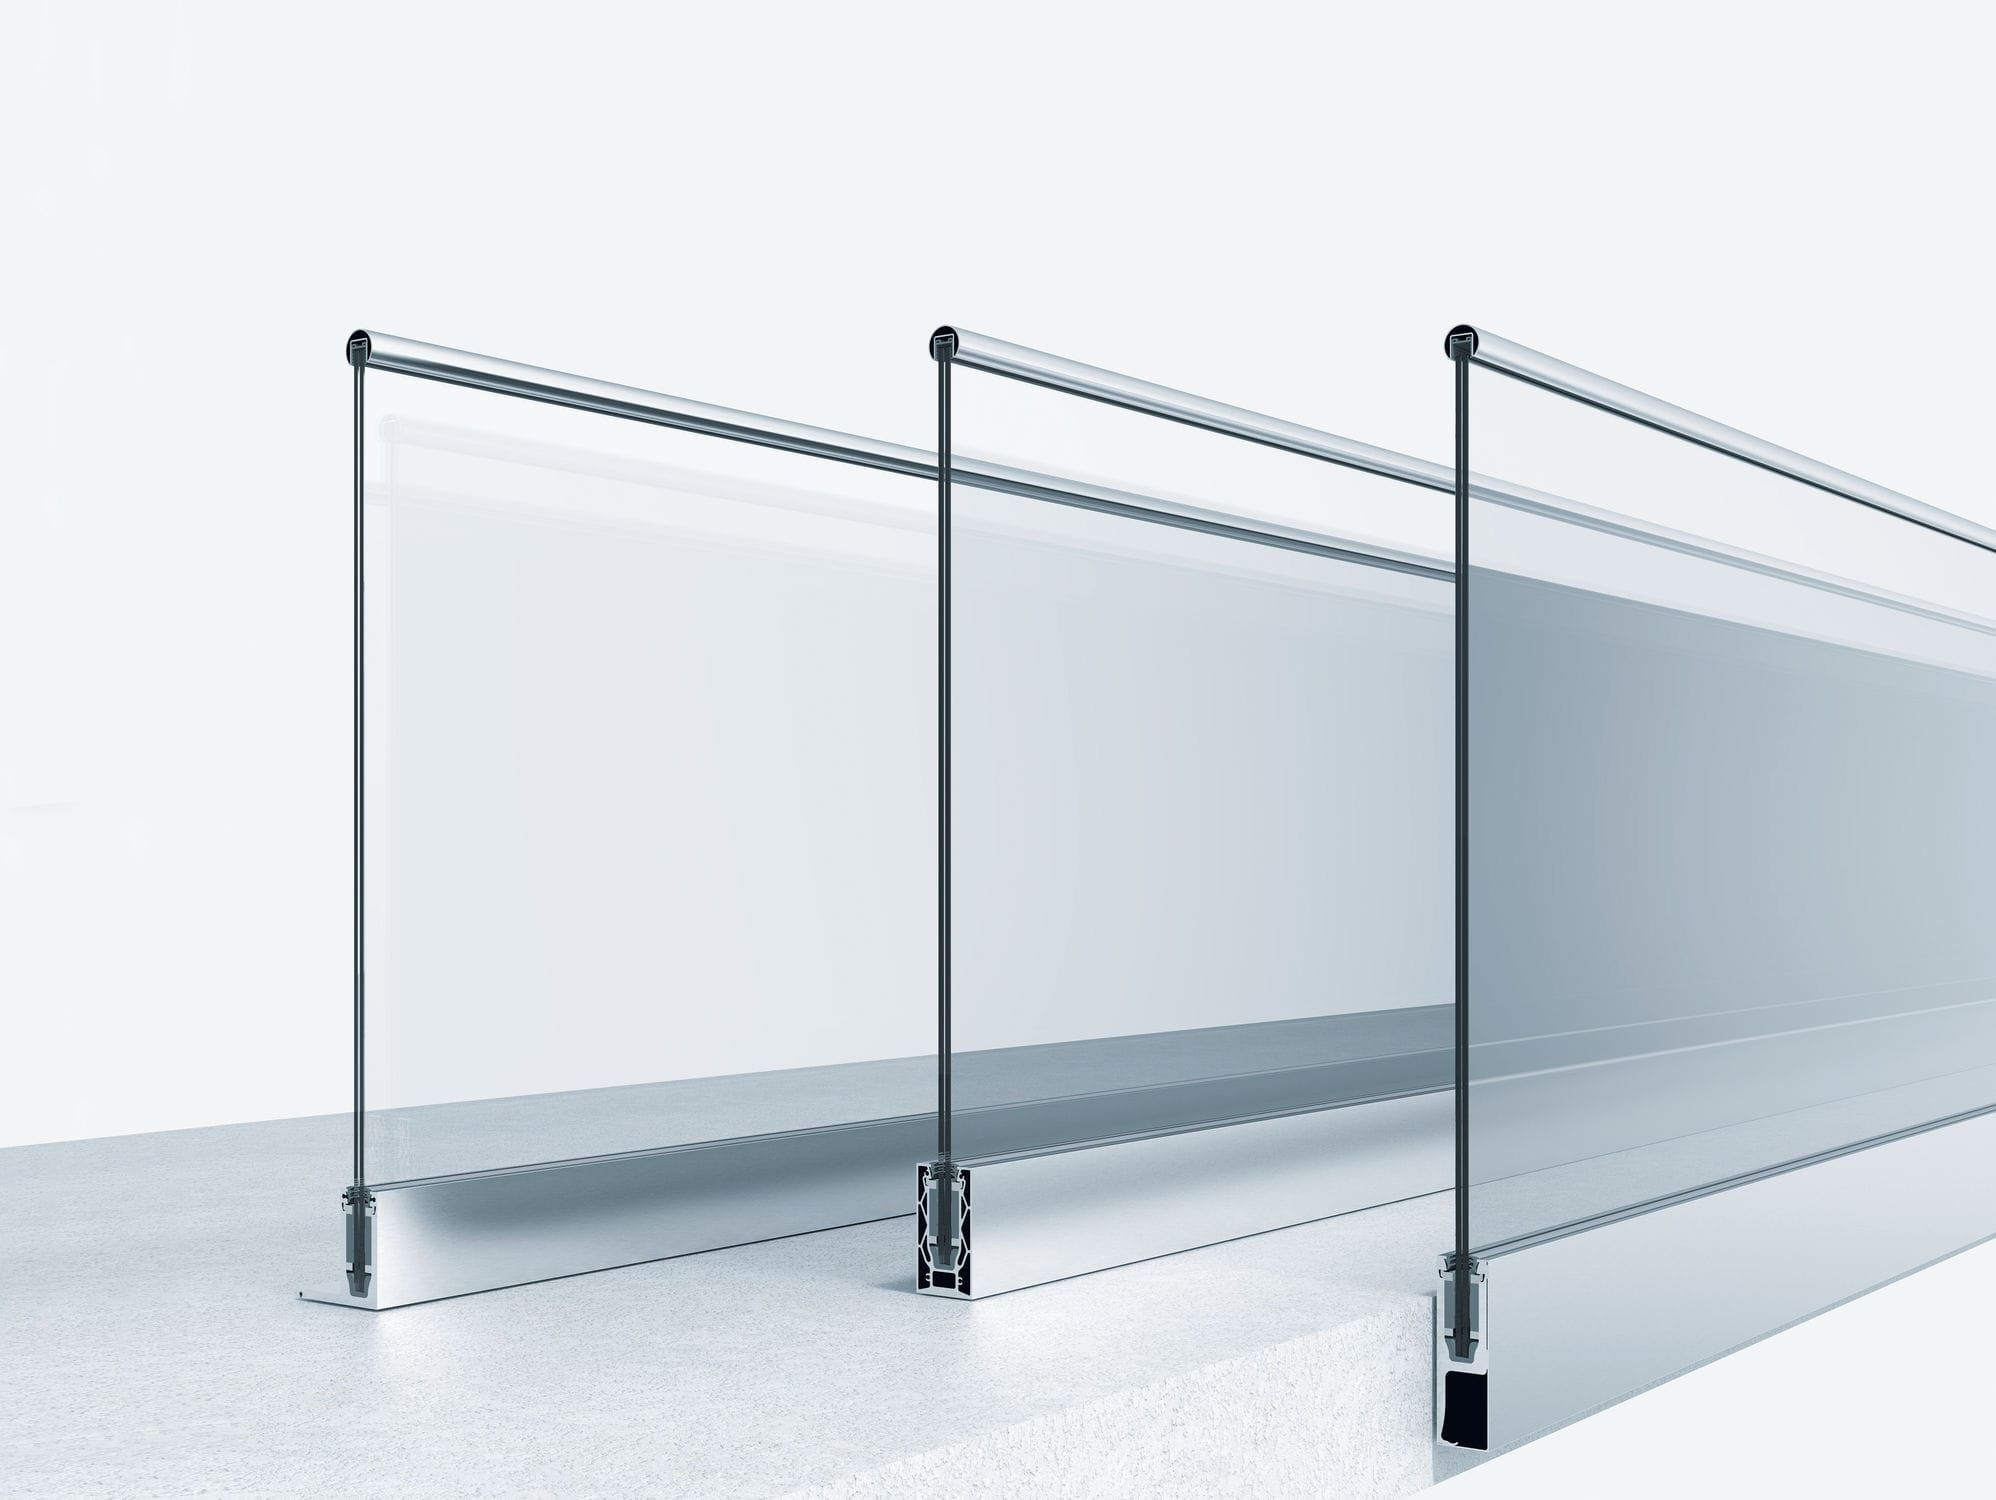 Outdoor railing / metal / glass panel / for balcony